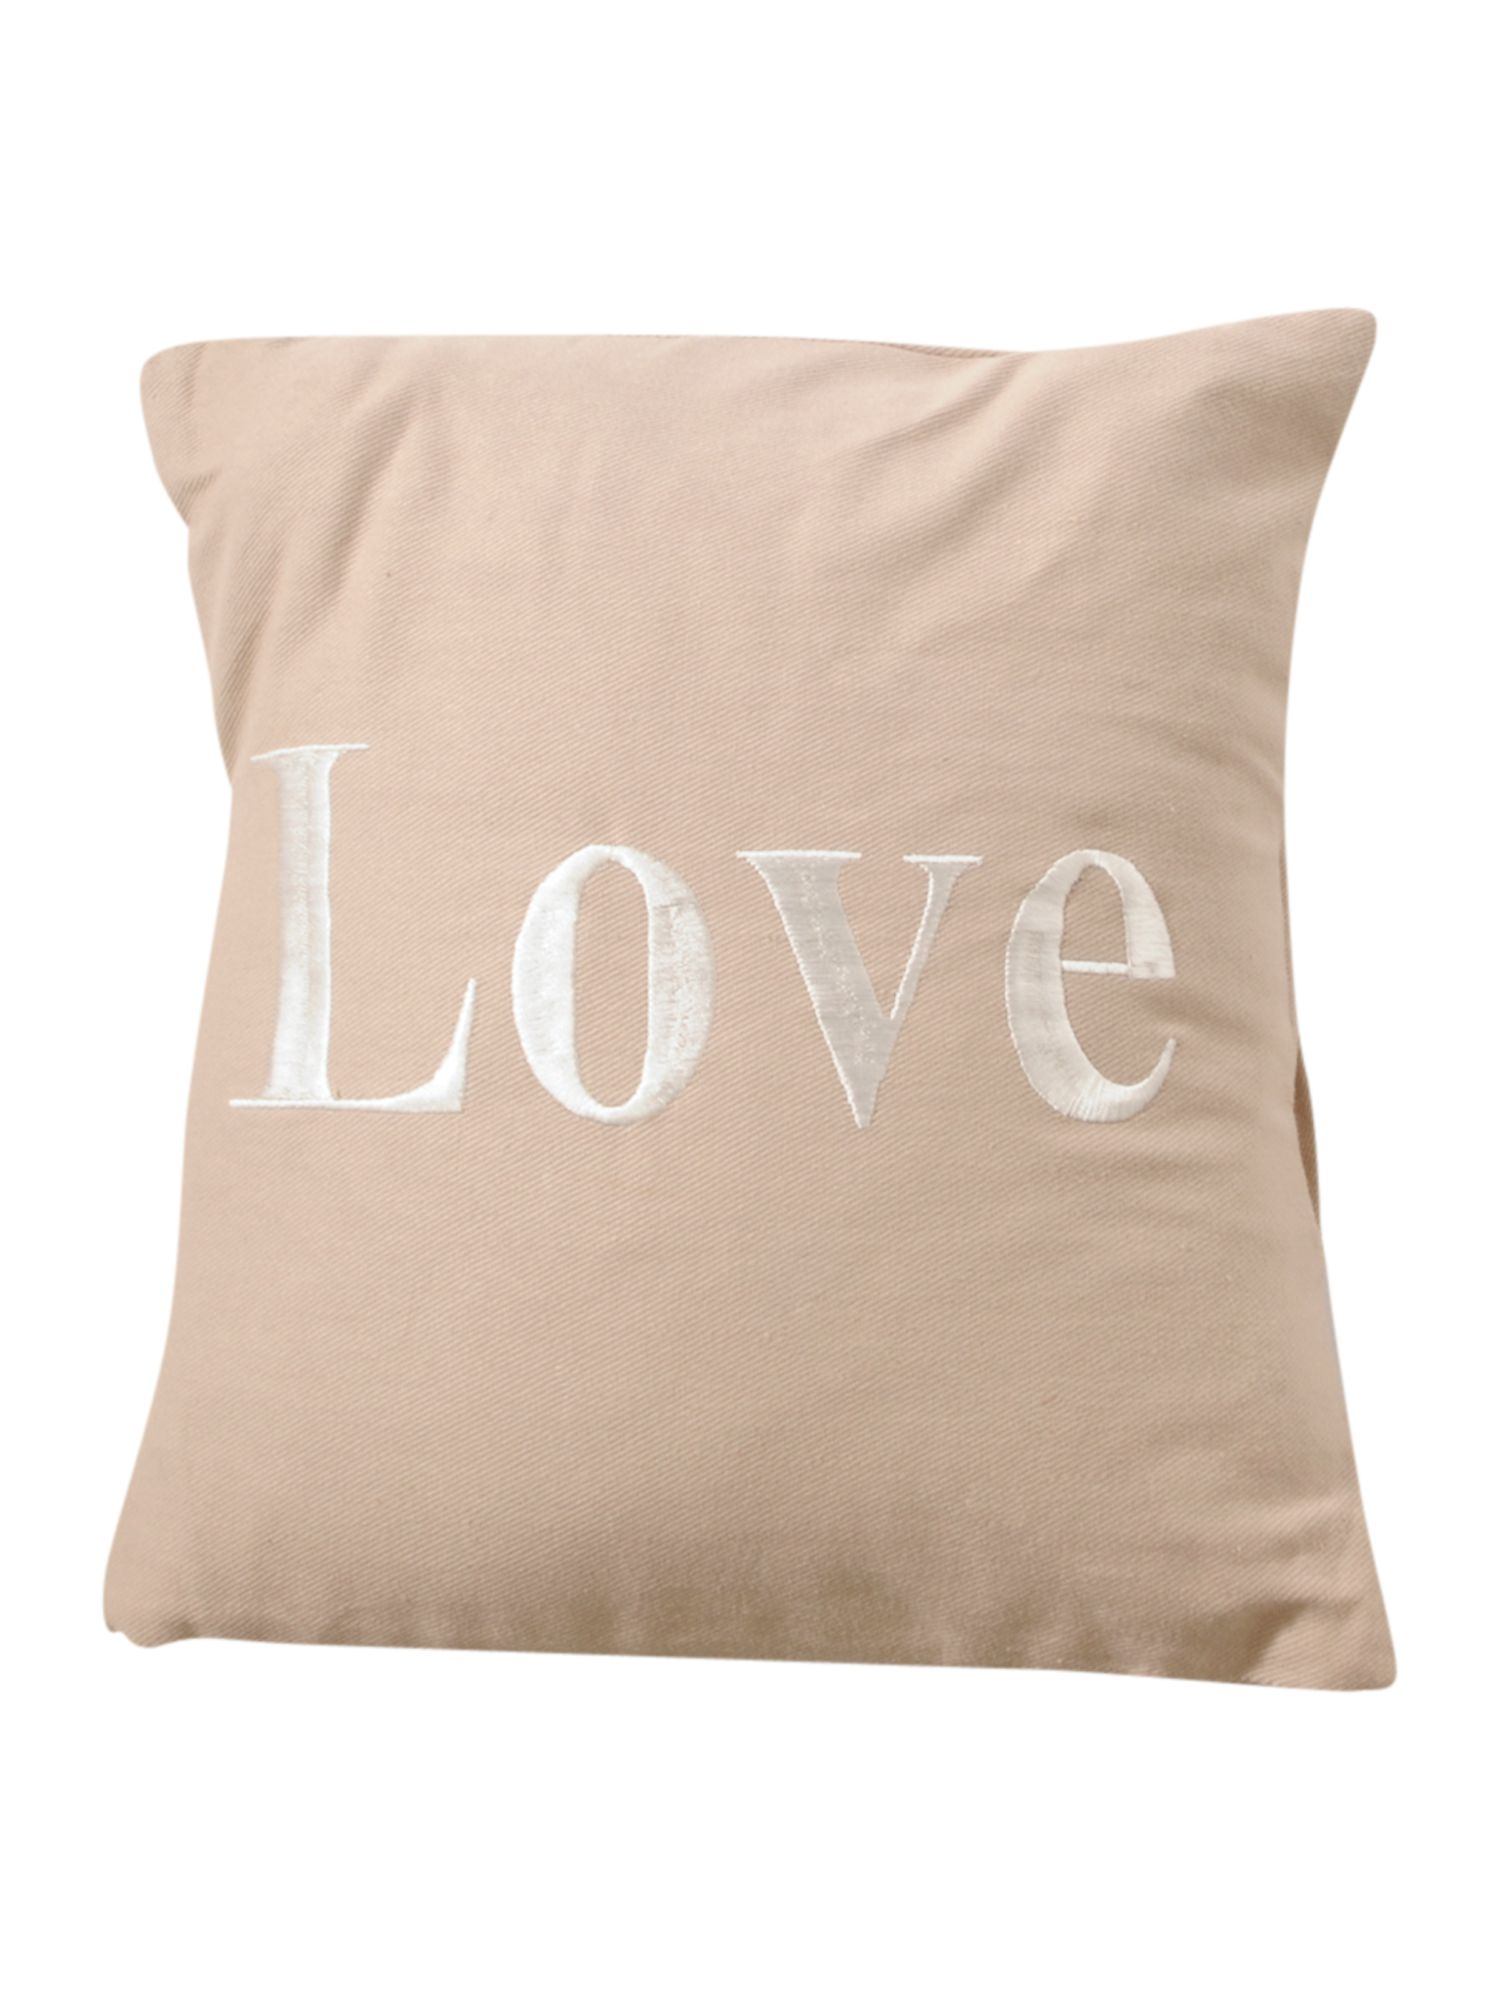 Adore cushion white on linen